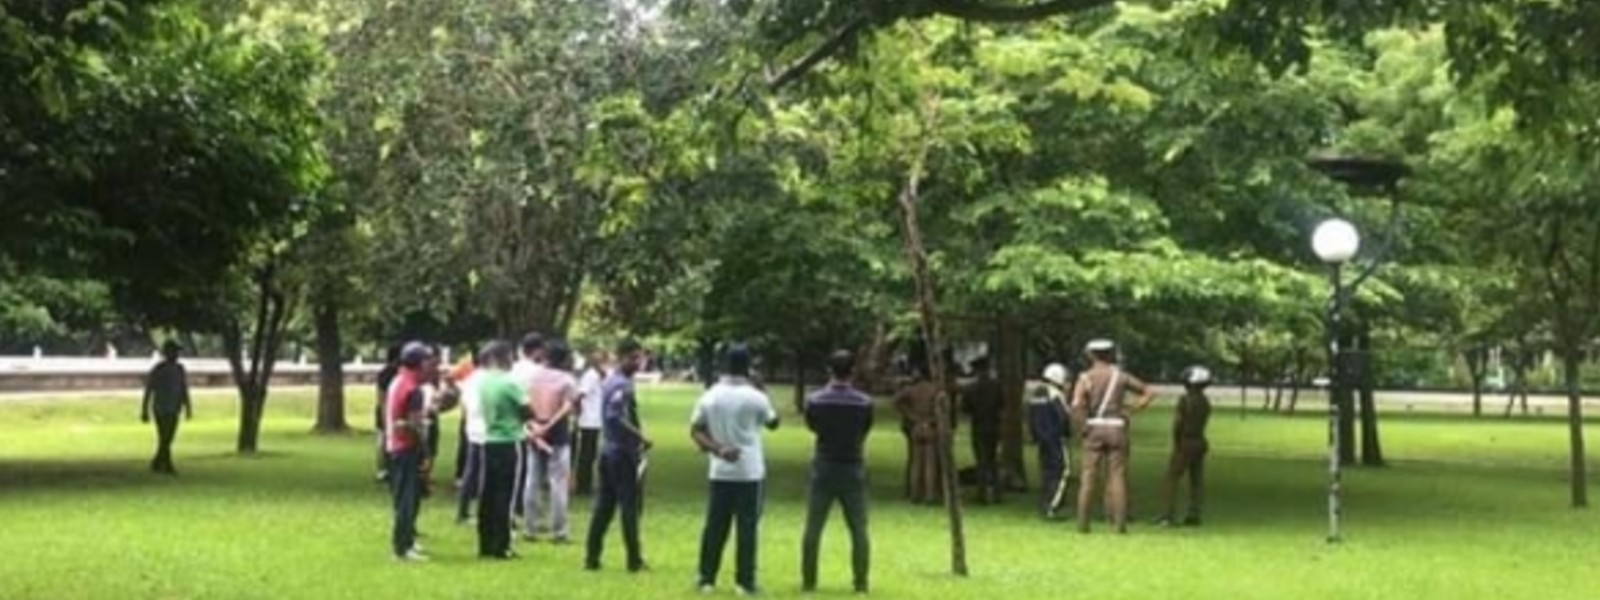 Rajeewa Jayaweera death ruled as suicide, but police investigations continue